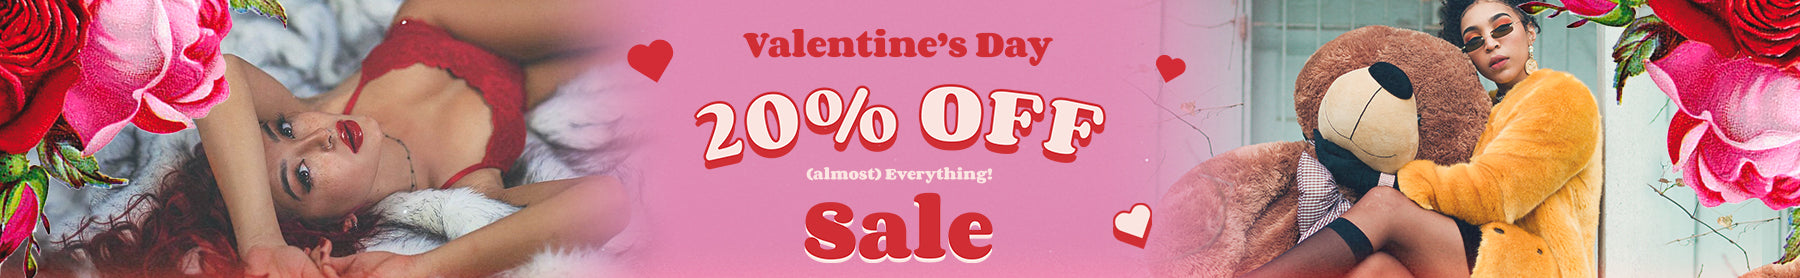 Valentine's Day Sale: 20% OFF this ENTIRE Collection!